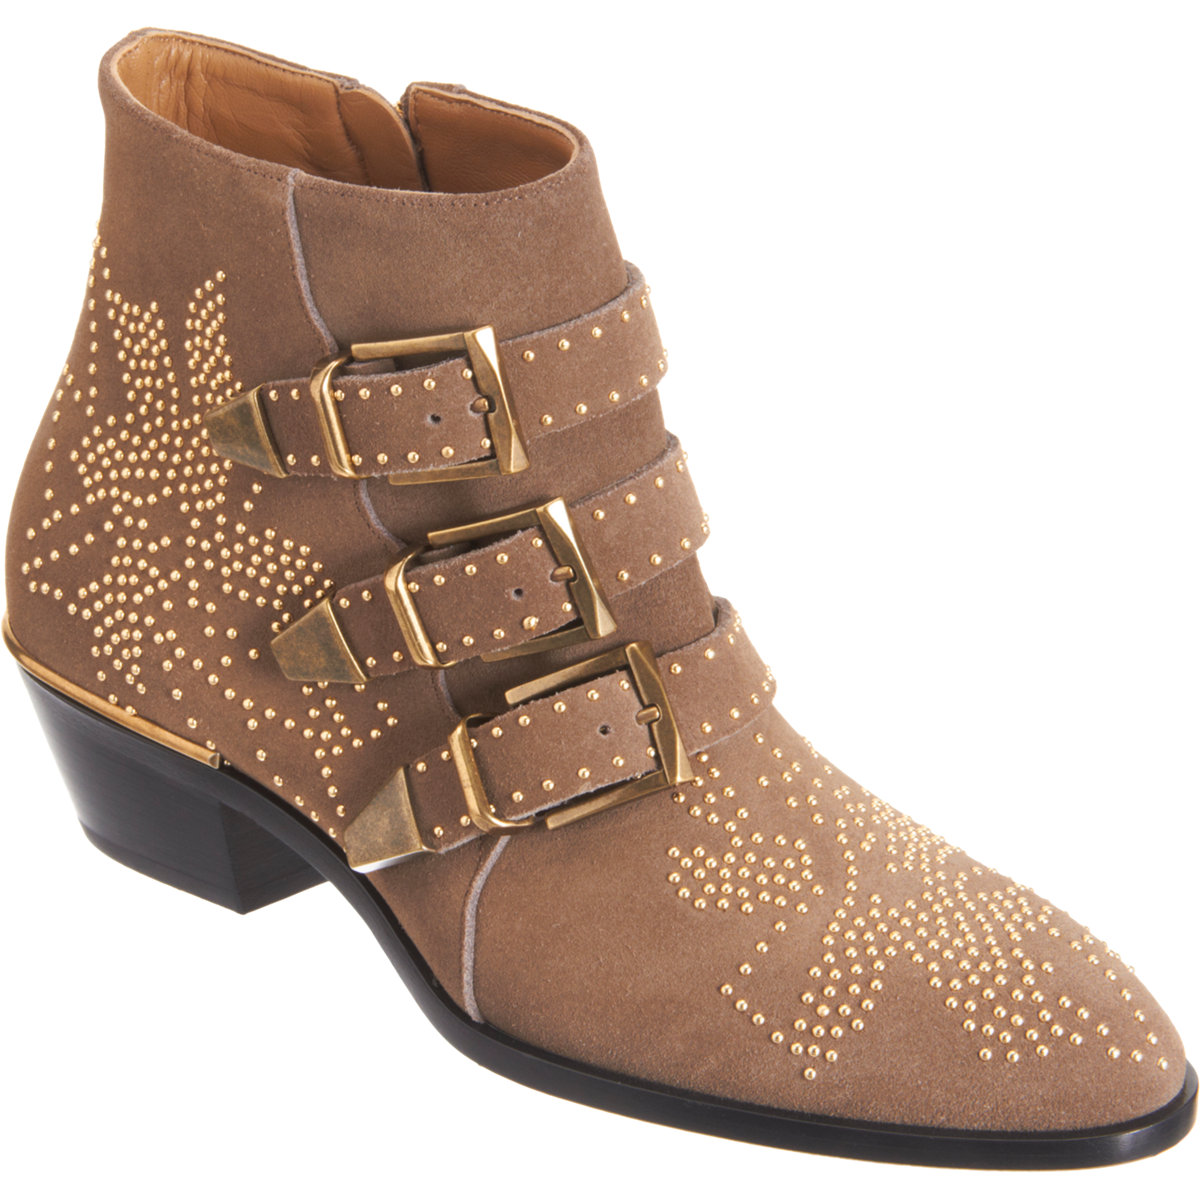 Chloé suede susan studded ankle boots at barneys.com